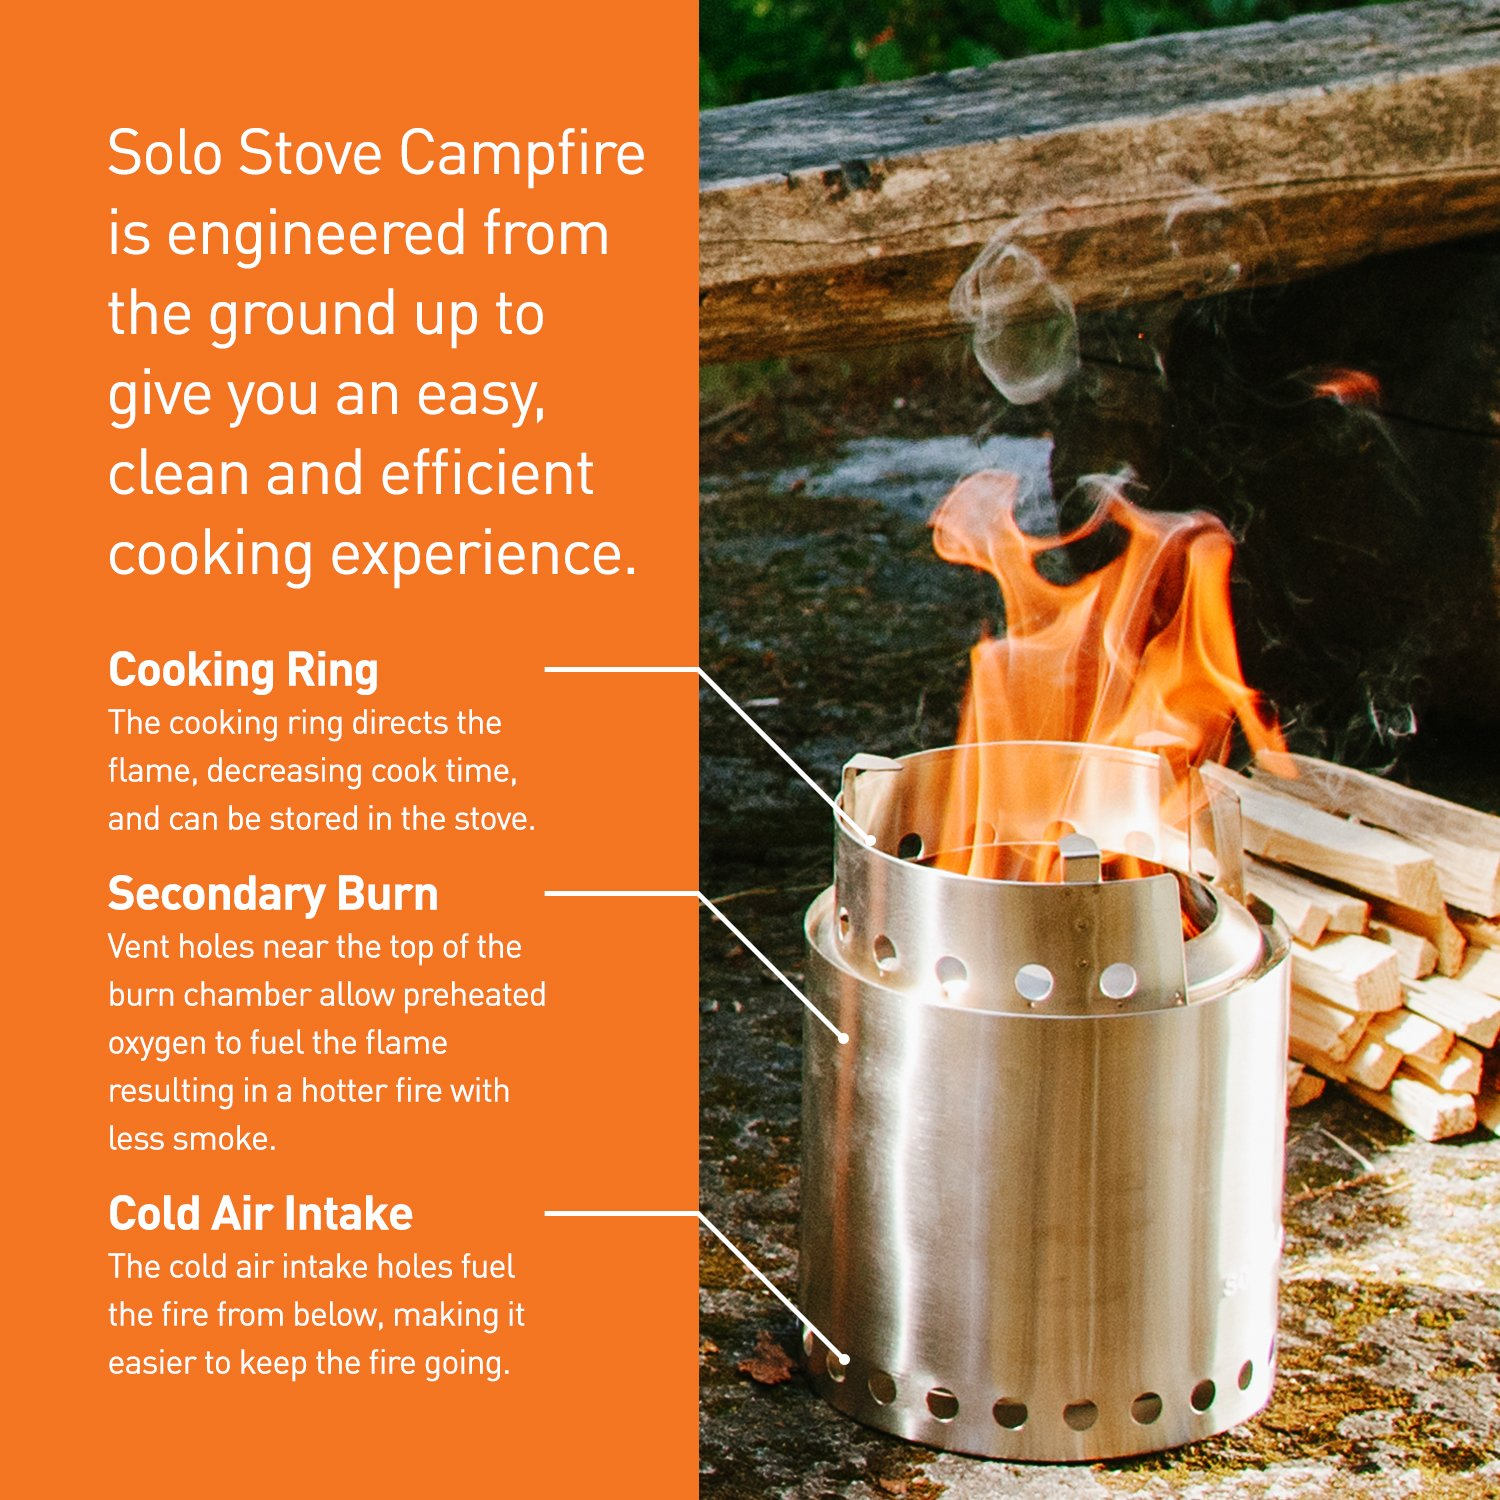 Solo Stove Campfire - 4+ Person Compact Wood Burning Camp Stove for Backpacking, Camping, Survival. Burns Twigs - NO Batteries or Liquid Fuel Gas Canister Required. by Solo Stove (Image #4)